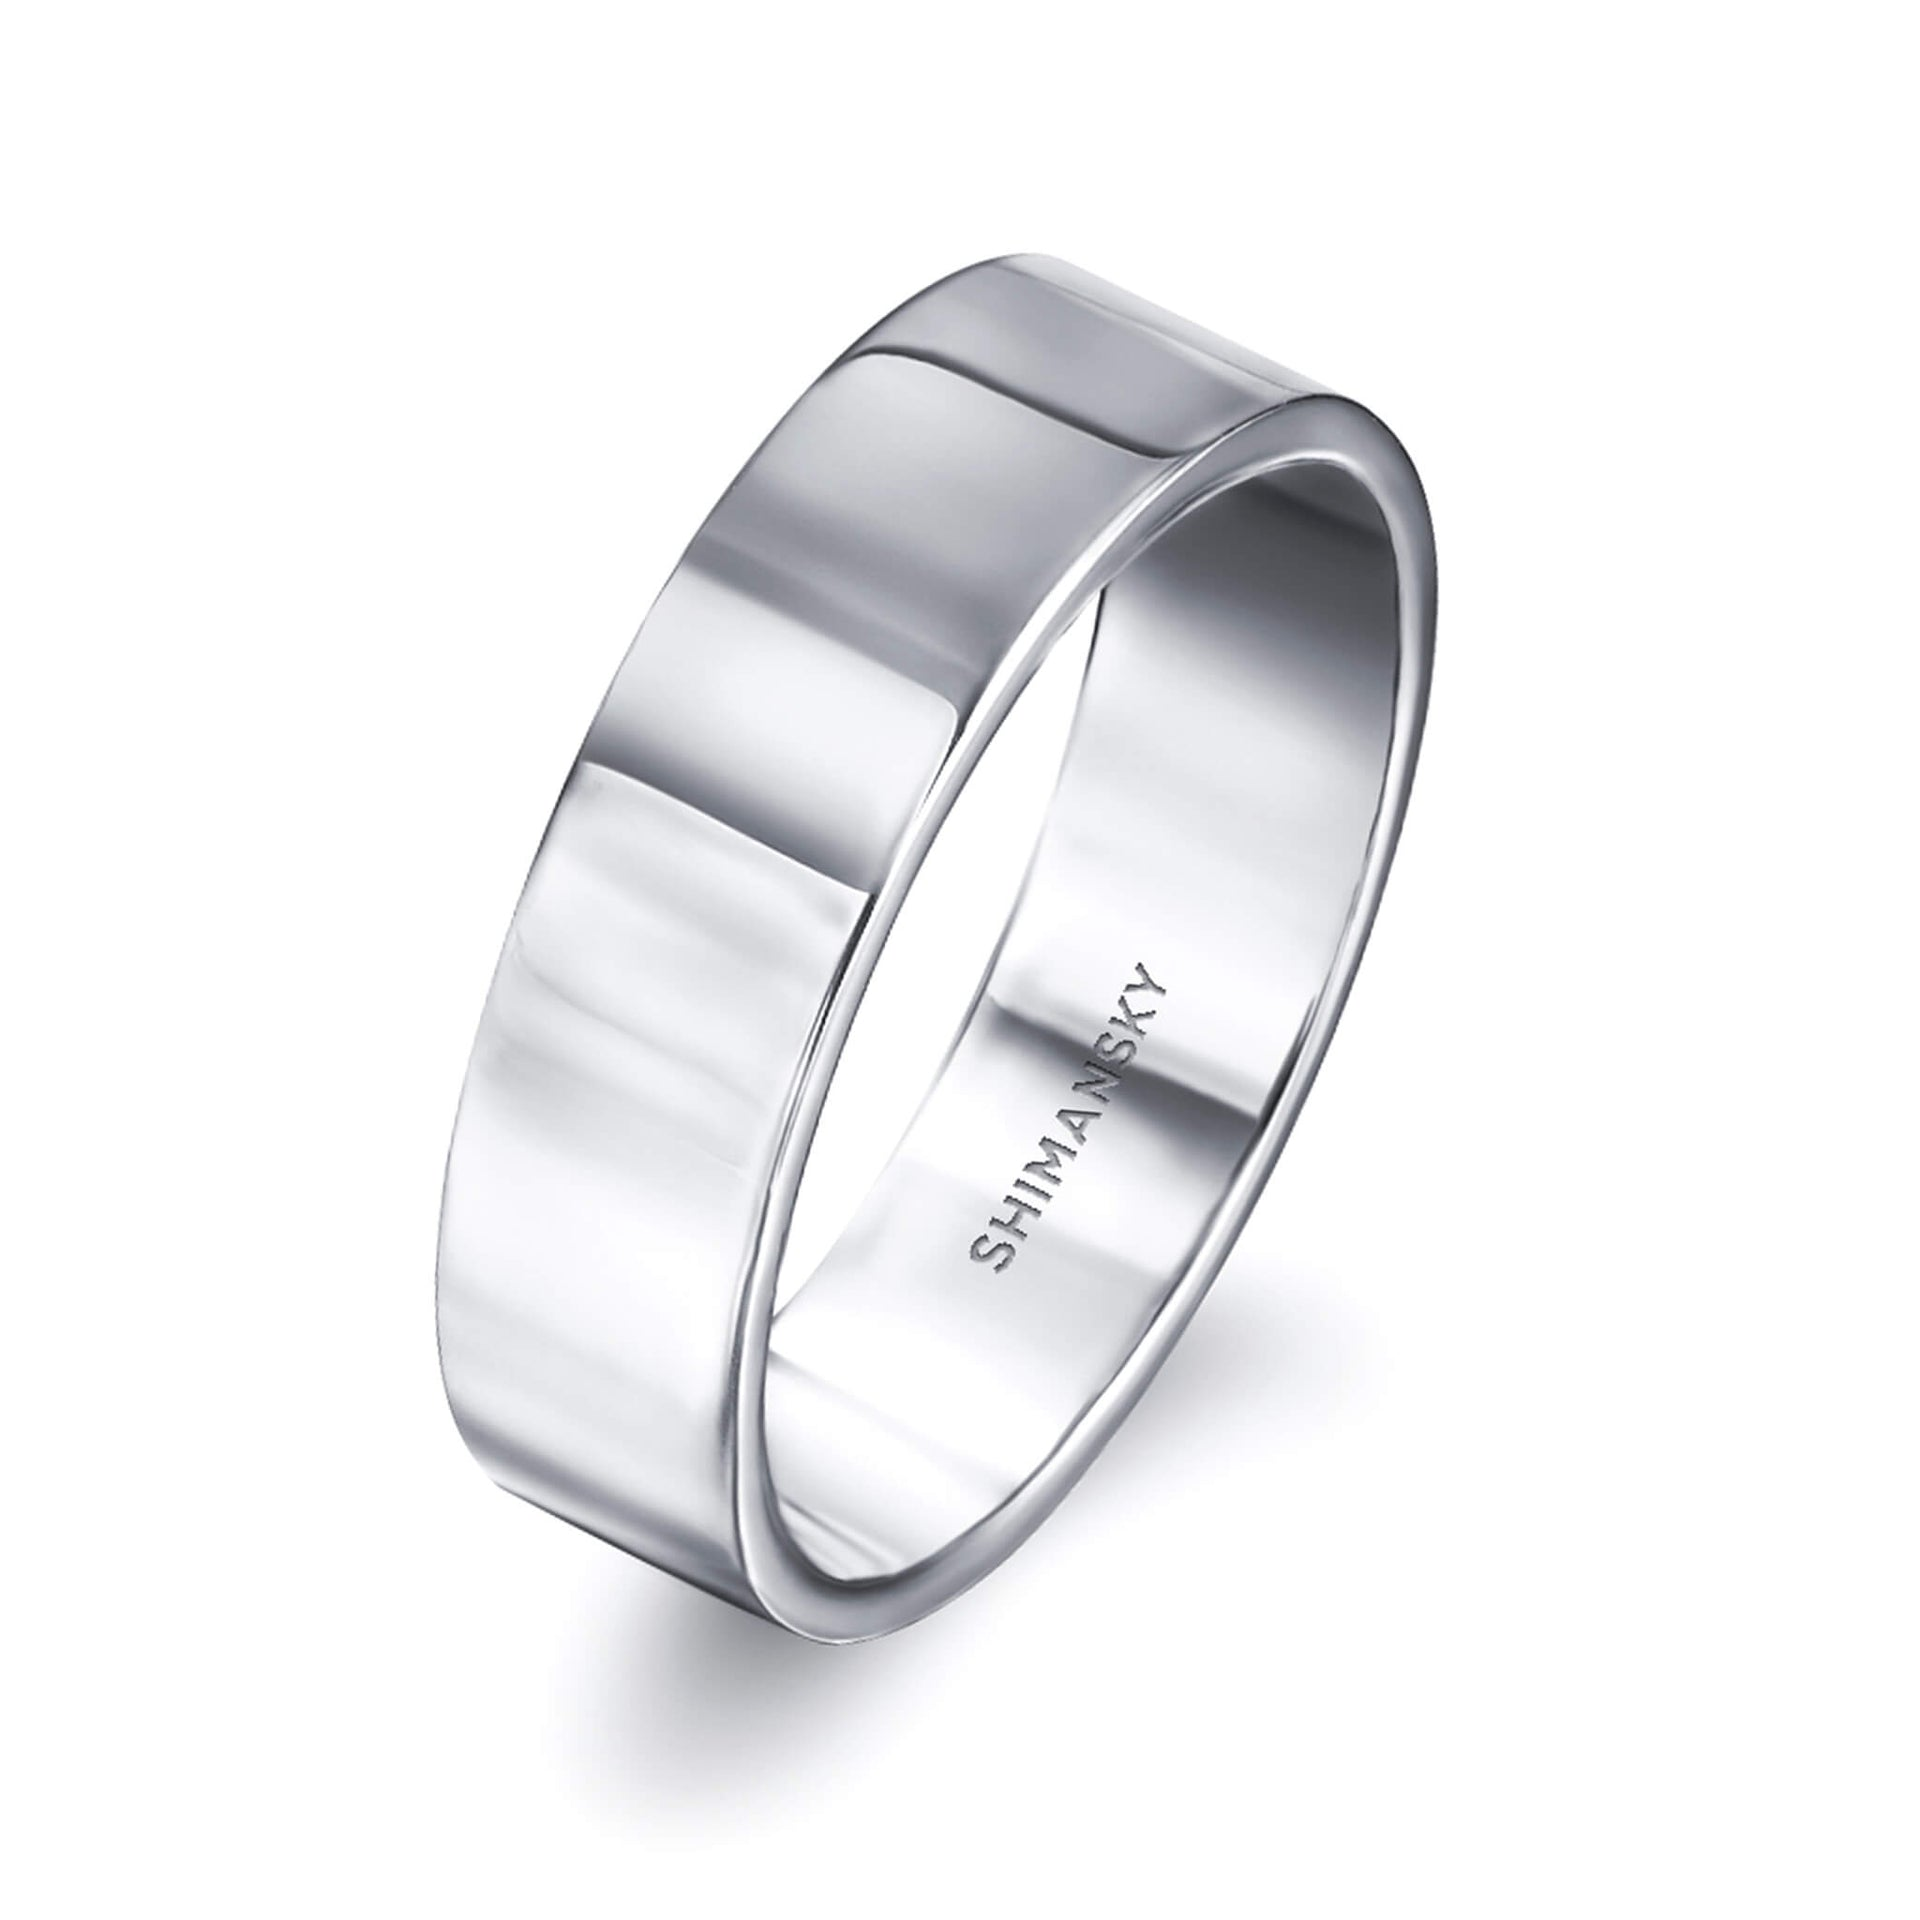 Max-Line Flat Polished Wedding Band in Palladium, 6mm 3D View